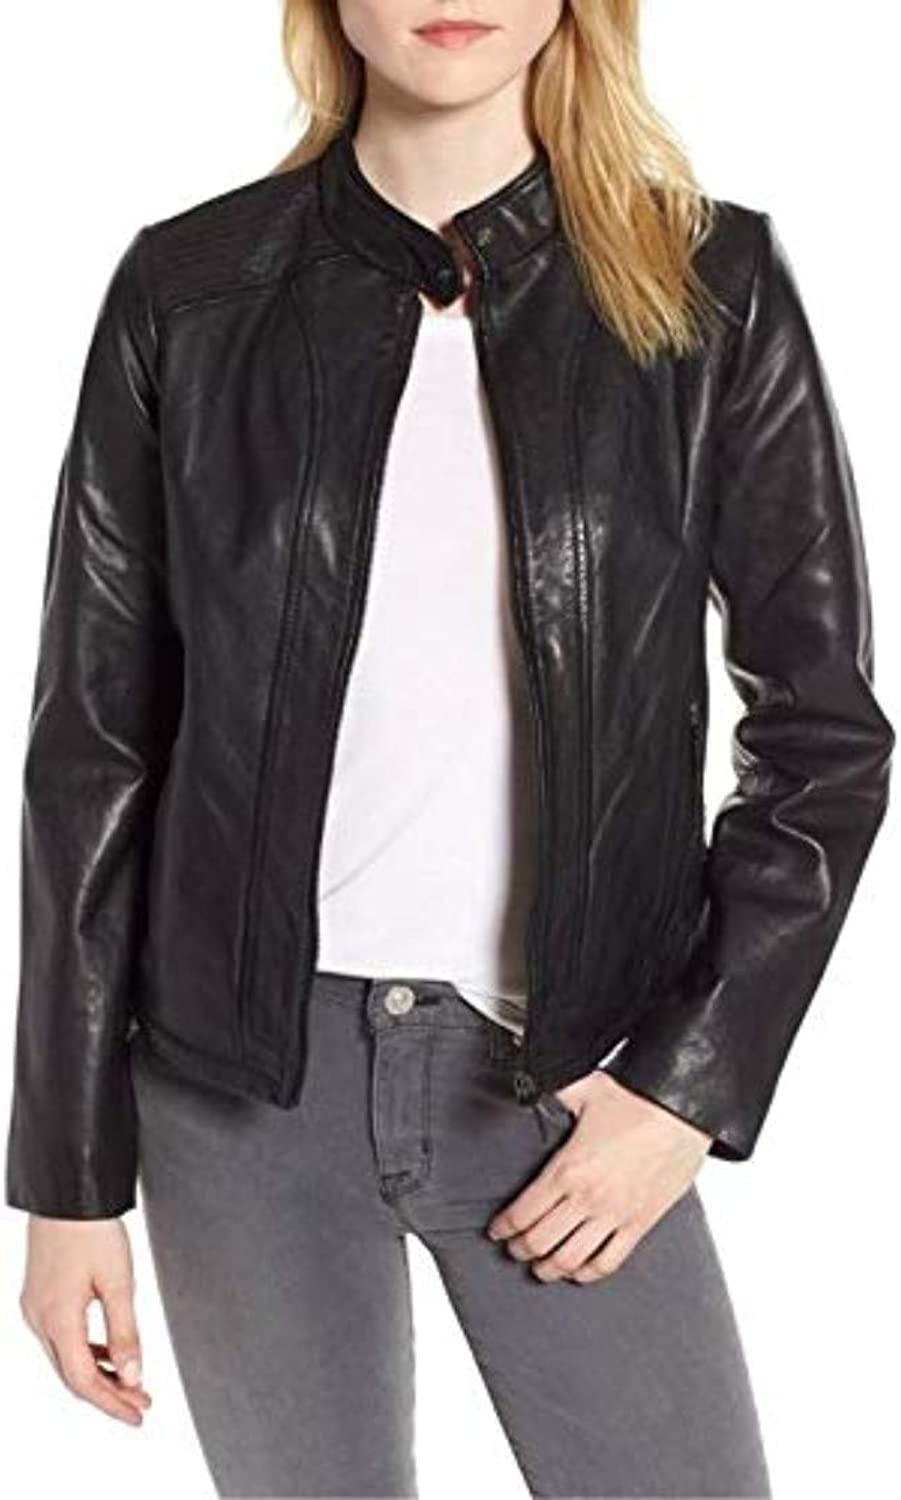 New Fashion Style Women's Leather Jackets Black L40_